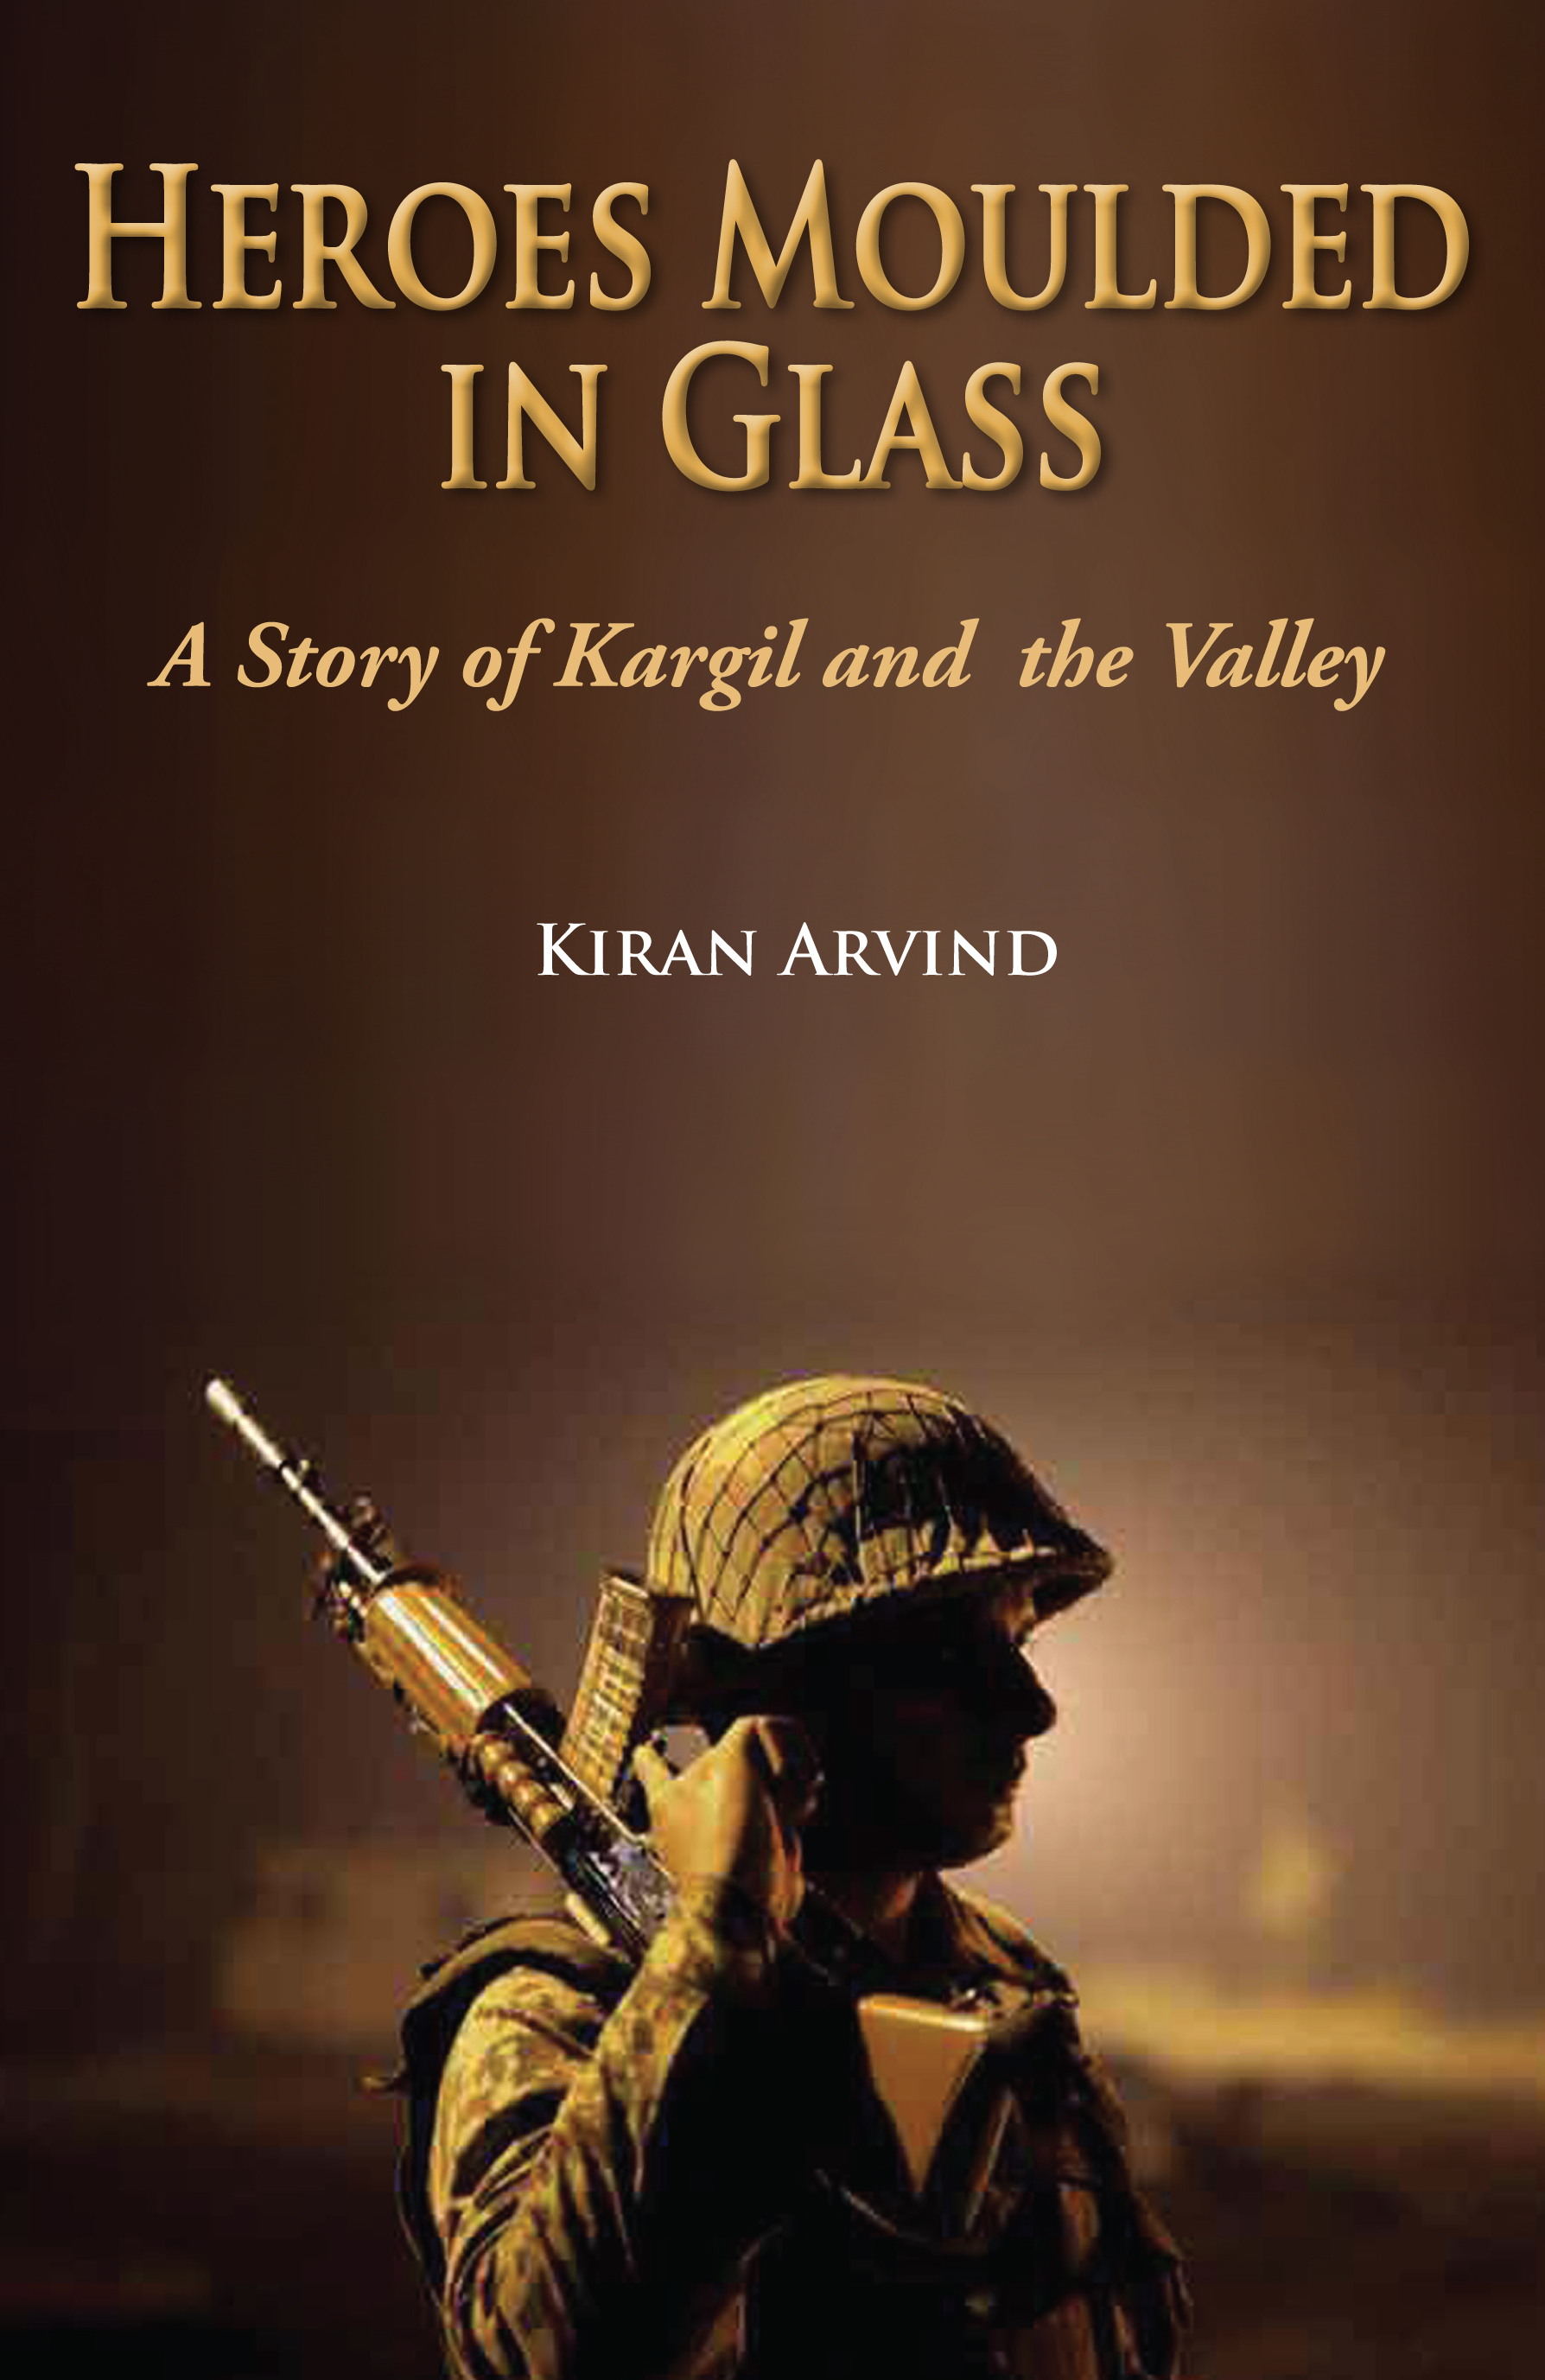 HEROES MOULDED IN GLASS : A Story of Kargil and the Valley